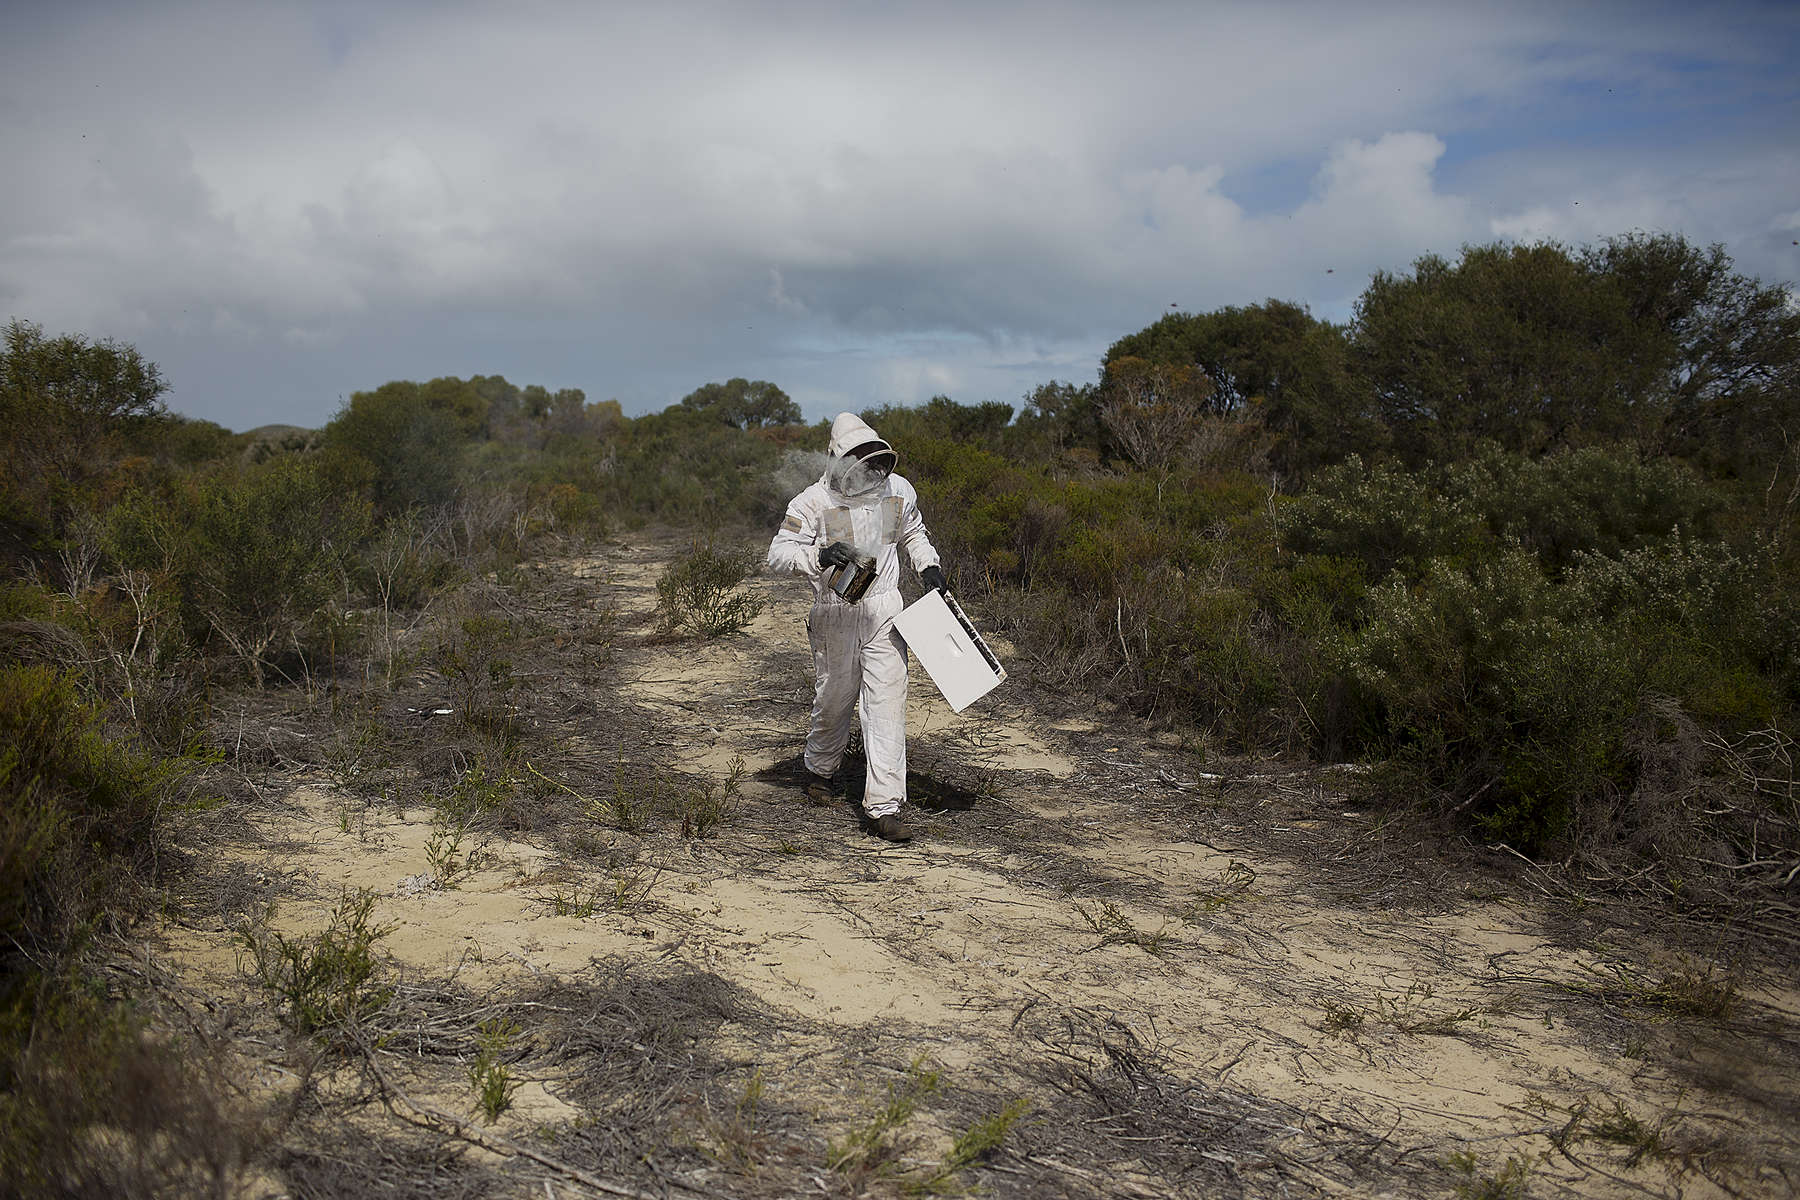 Brendan Fewster walks through the native bush towards the bee colony. Brendan Fewster and his business partner Brad Gresele have bee colonies at sites across Western Australia including the Southern Beekeepers Nature Reserve outside Cervantes a small coastal town in Western Australia. 08/16/2013  Credit : Conor Ashleigh for the International Herald Tribune.